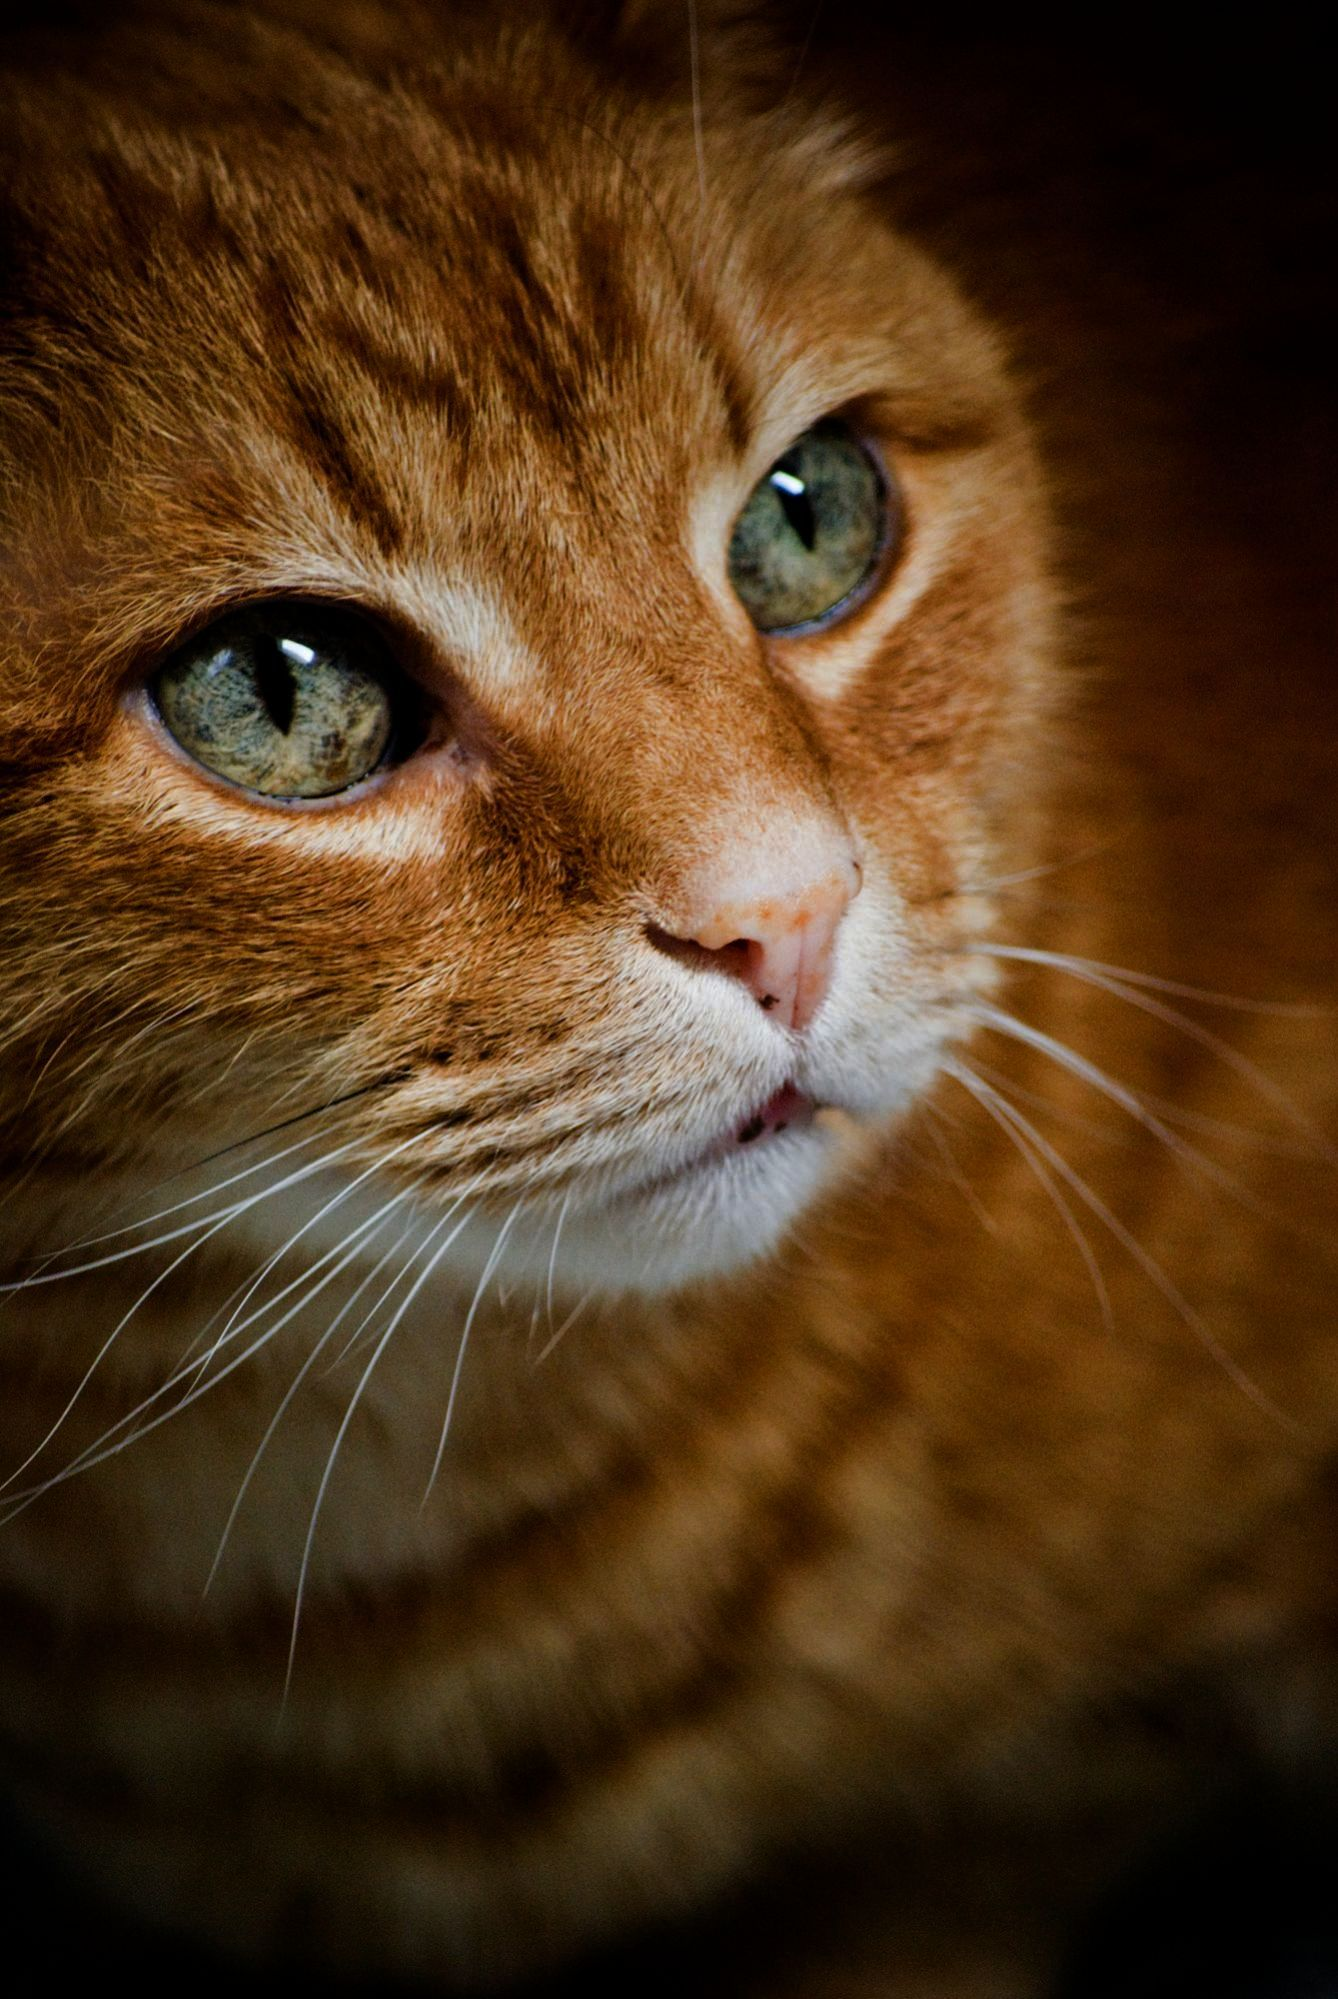 Outstanding Beautiful Cats For Sale In Lahore Google Orange Tabby Cats Beautiful Cats Orange Cats